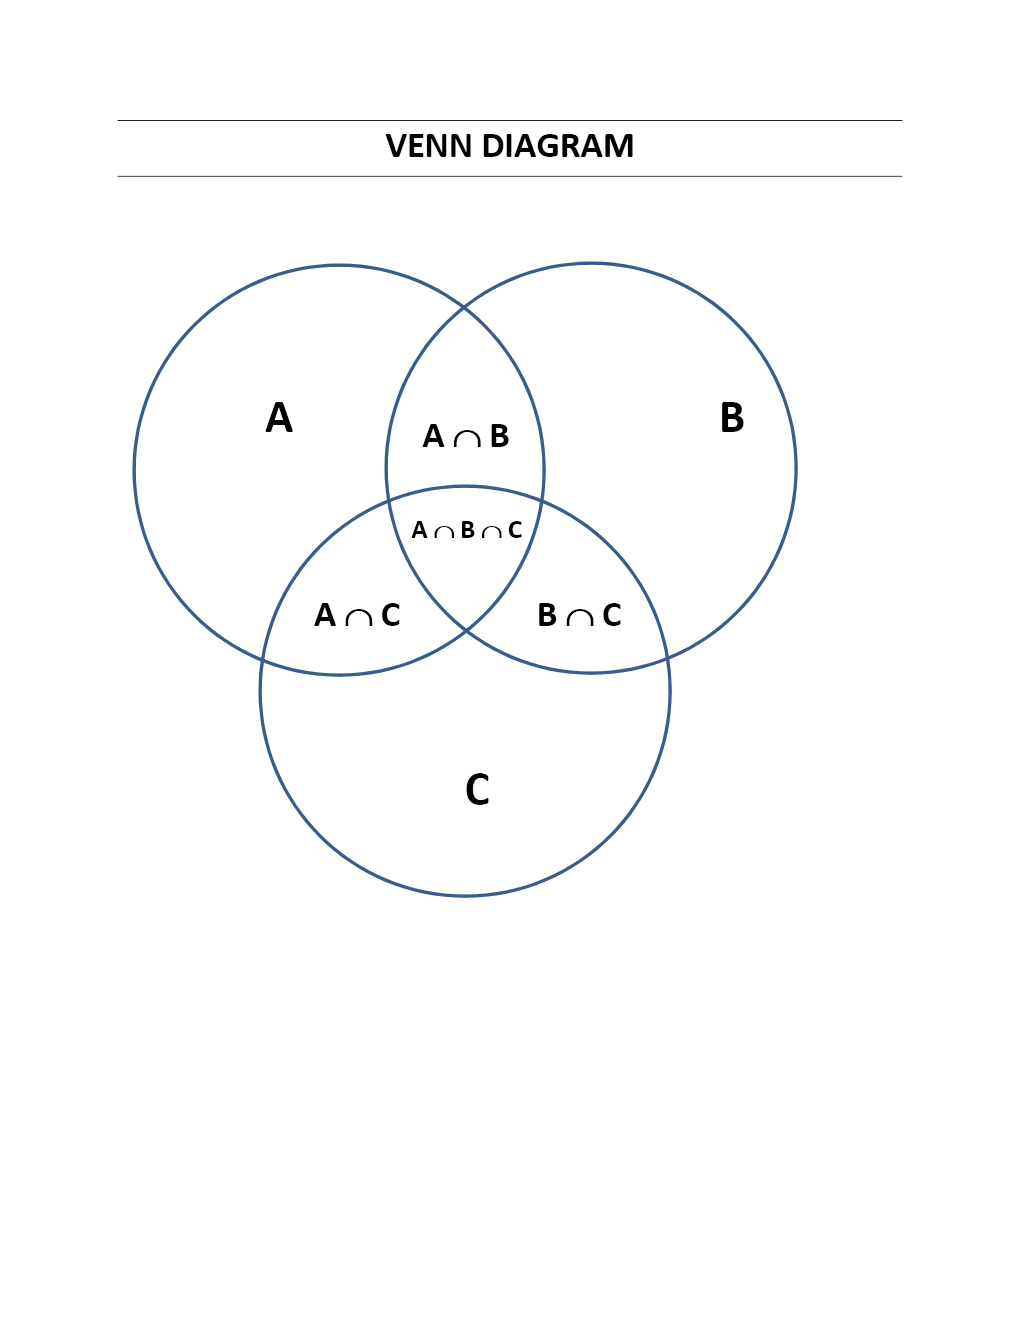 Venn diagram venn diagram template pooptronica